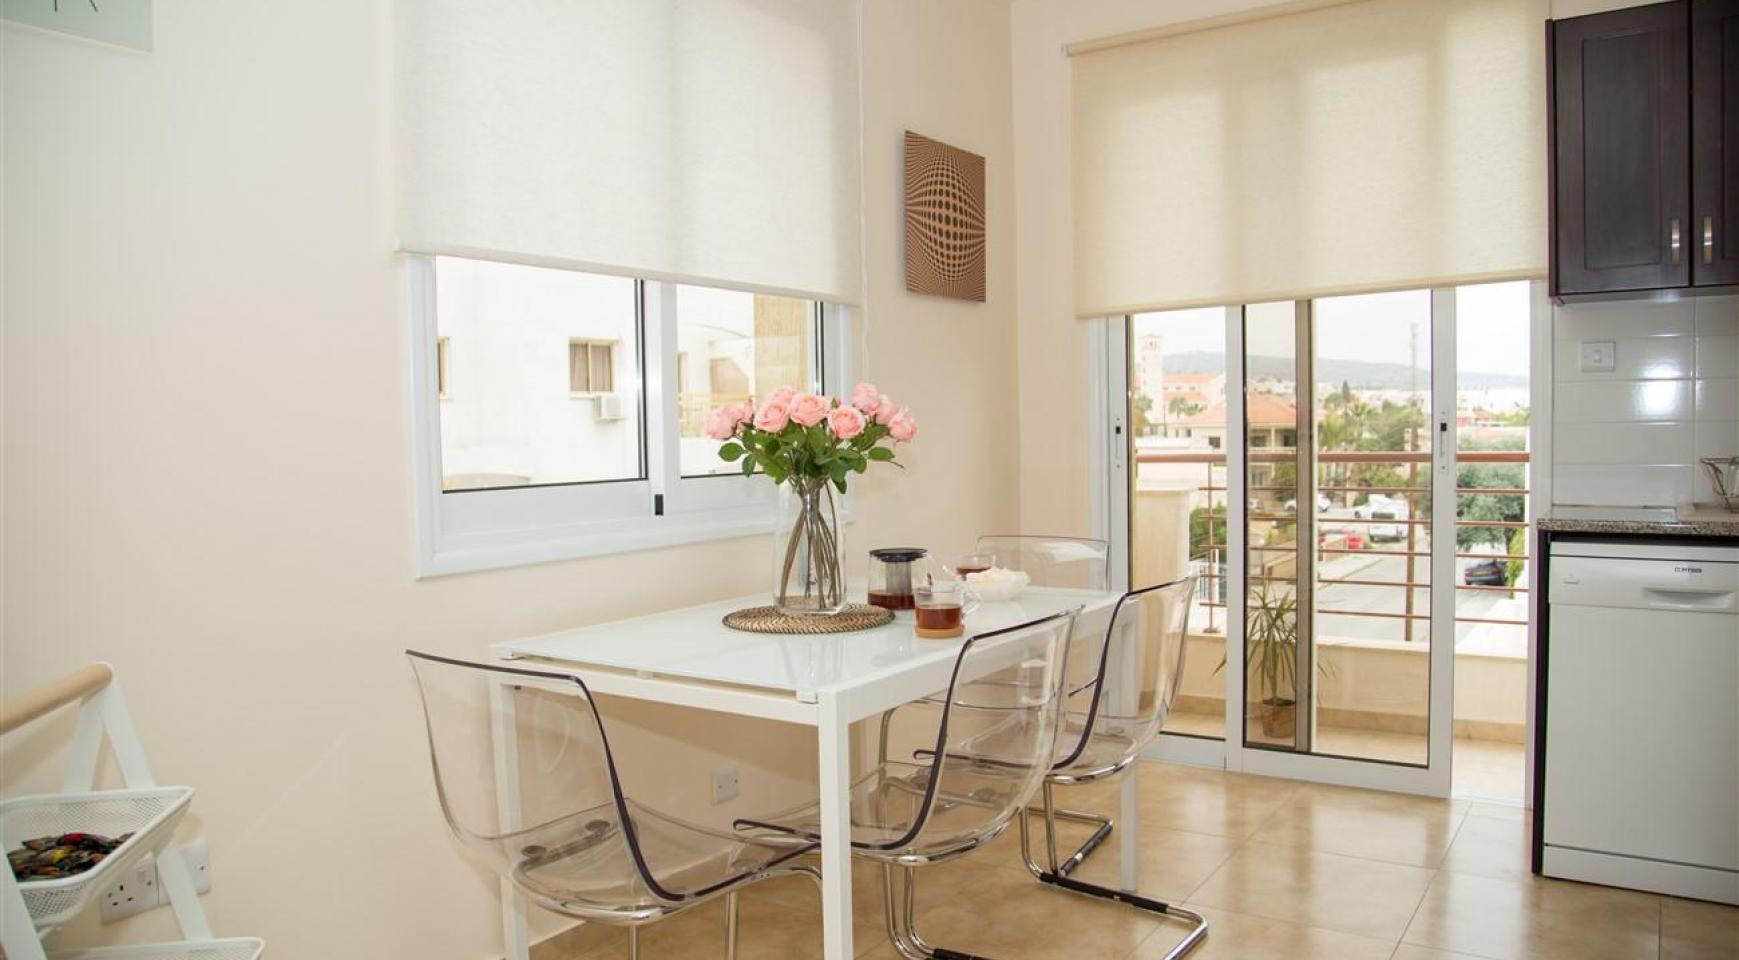 Luxury 2 Bedroom Apartment Frida 201 in the Tourist Area - 9